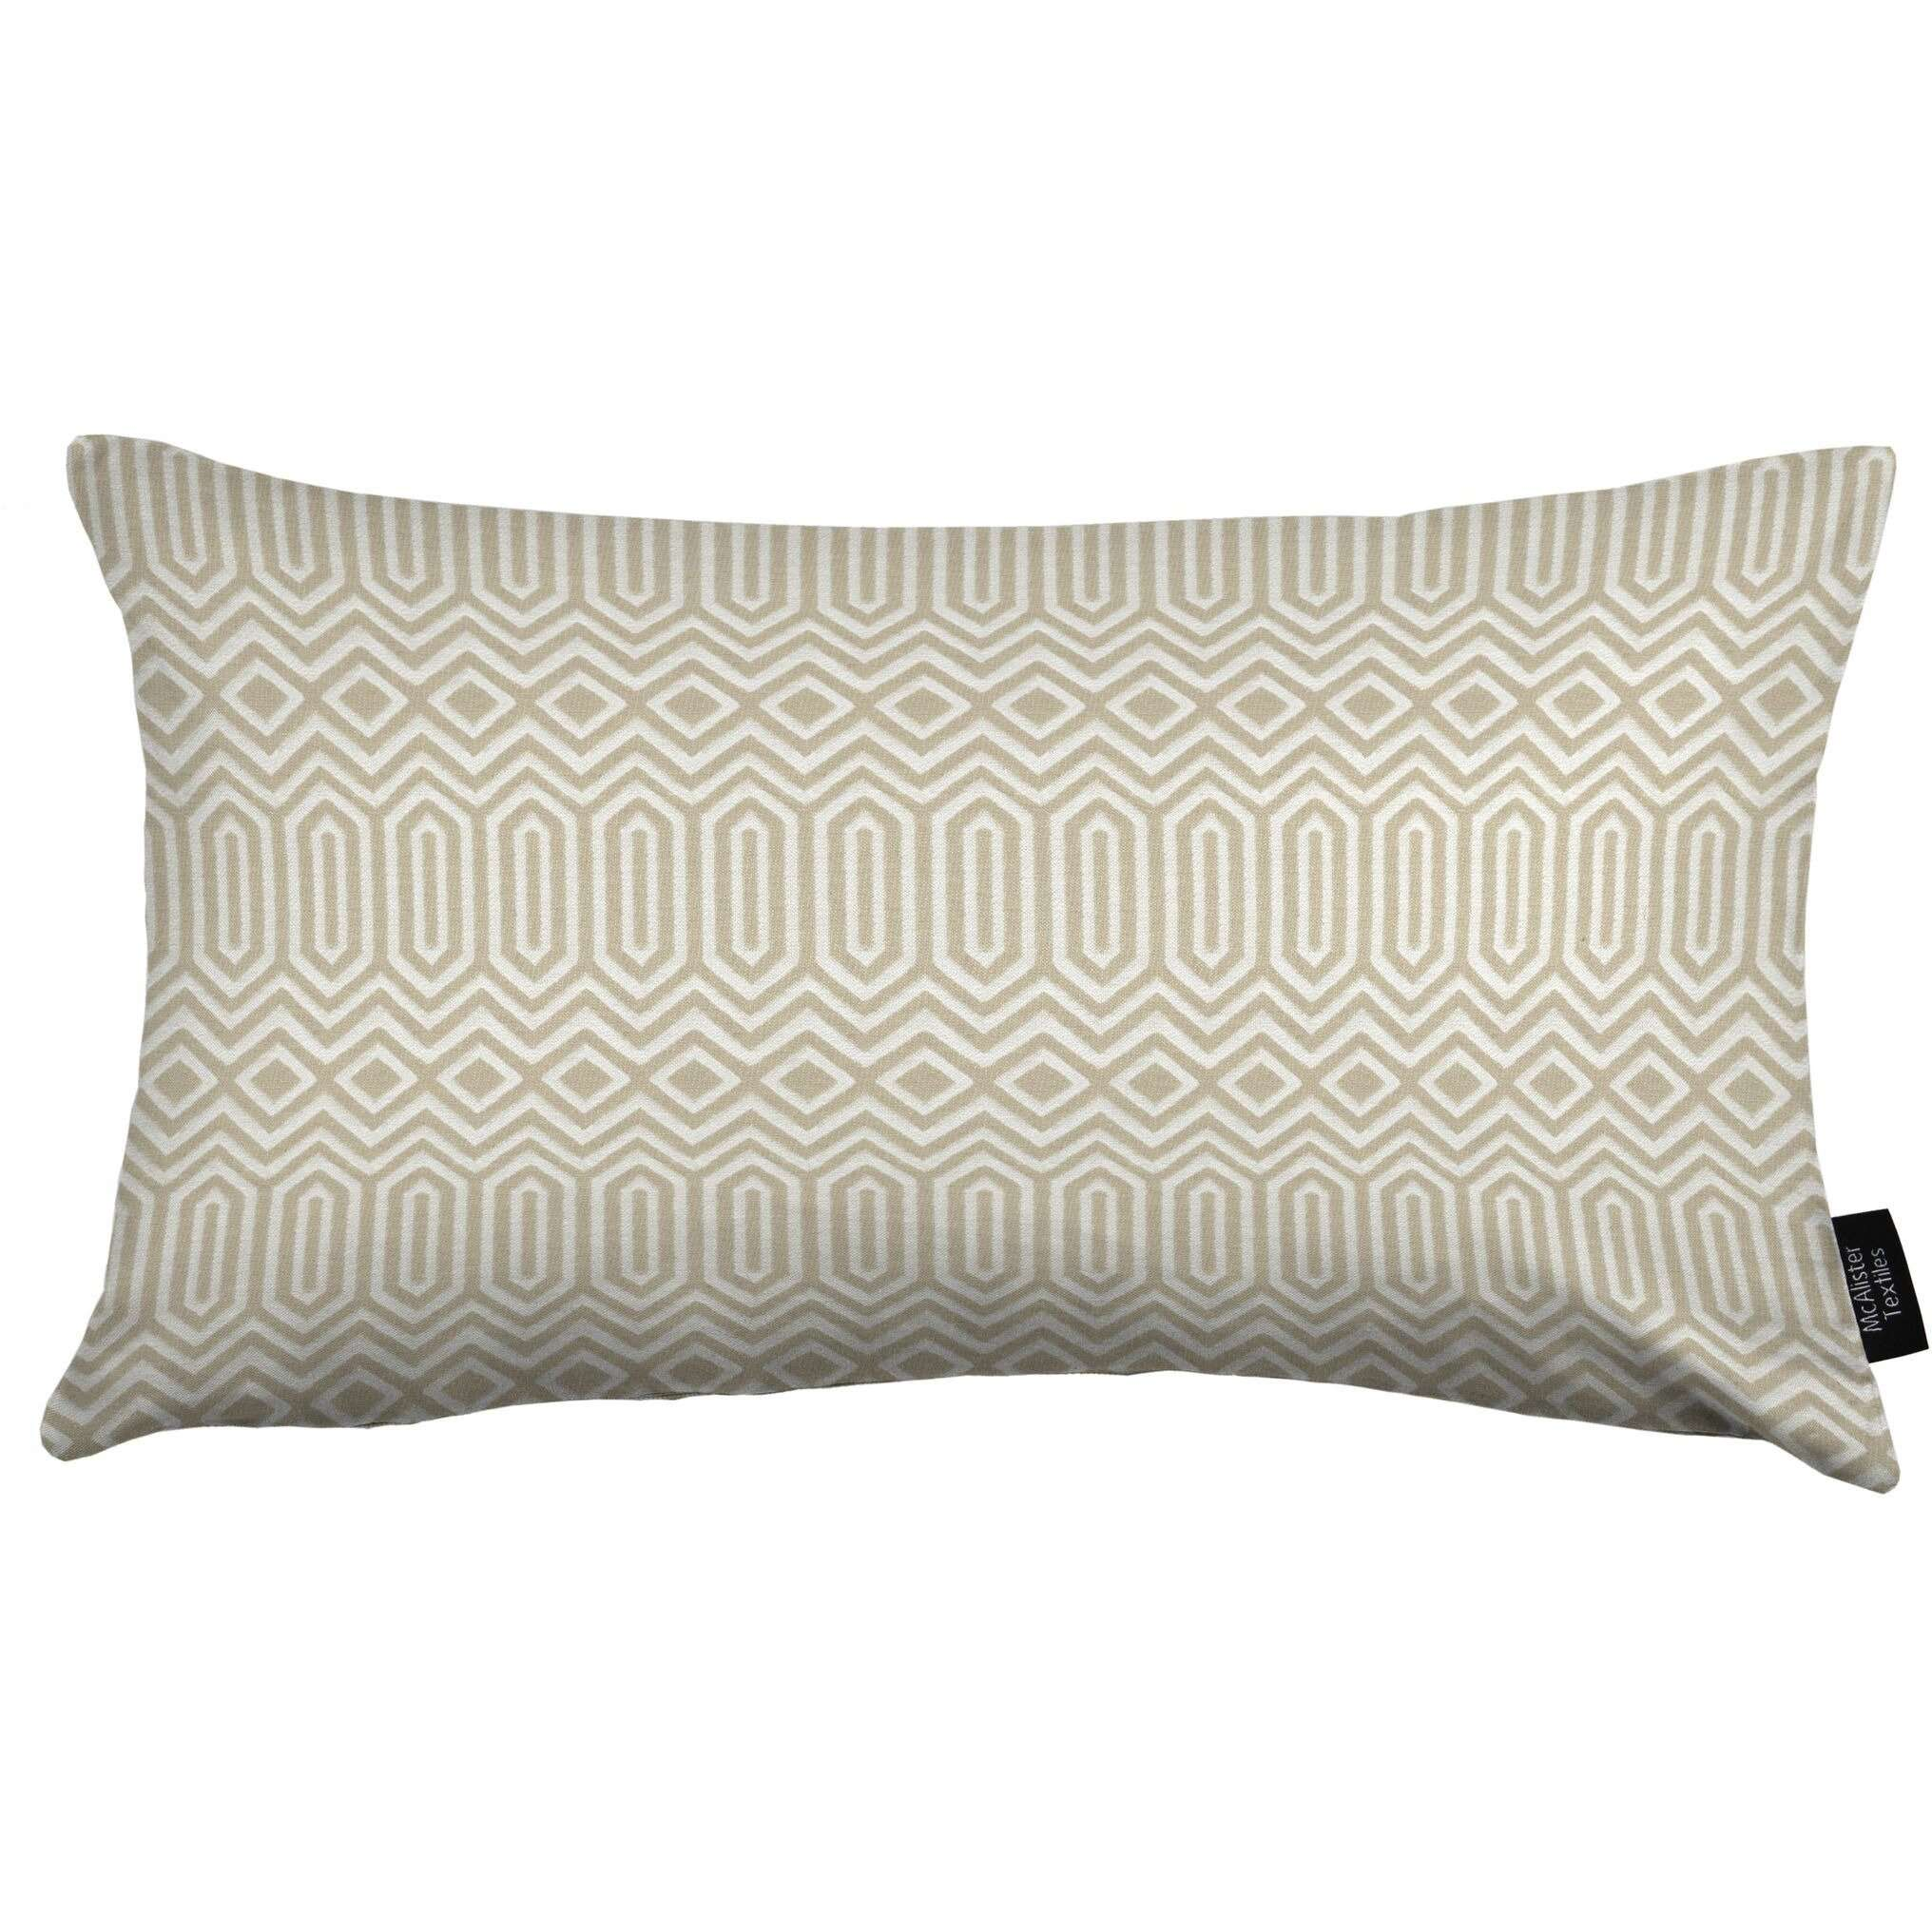 McAlister Textiles Colorado Geometric Taupe Beige Cushion Cushions and Covers Cover Only 50cm x 30cm